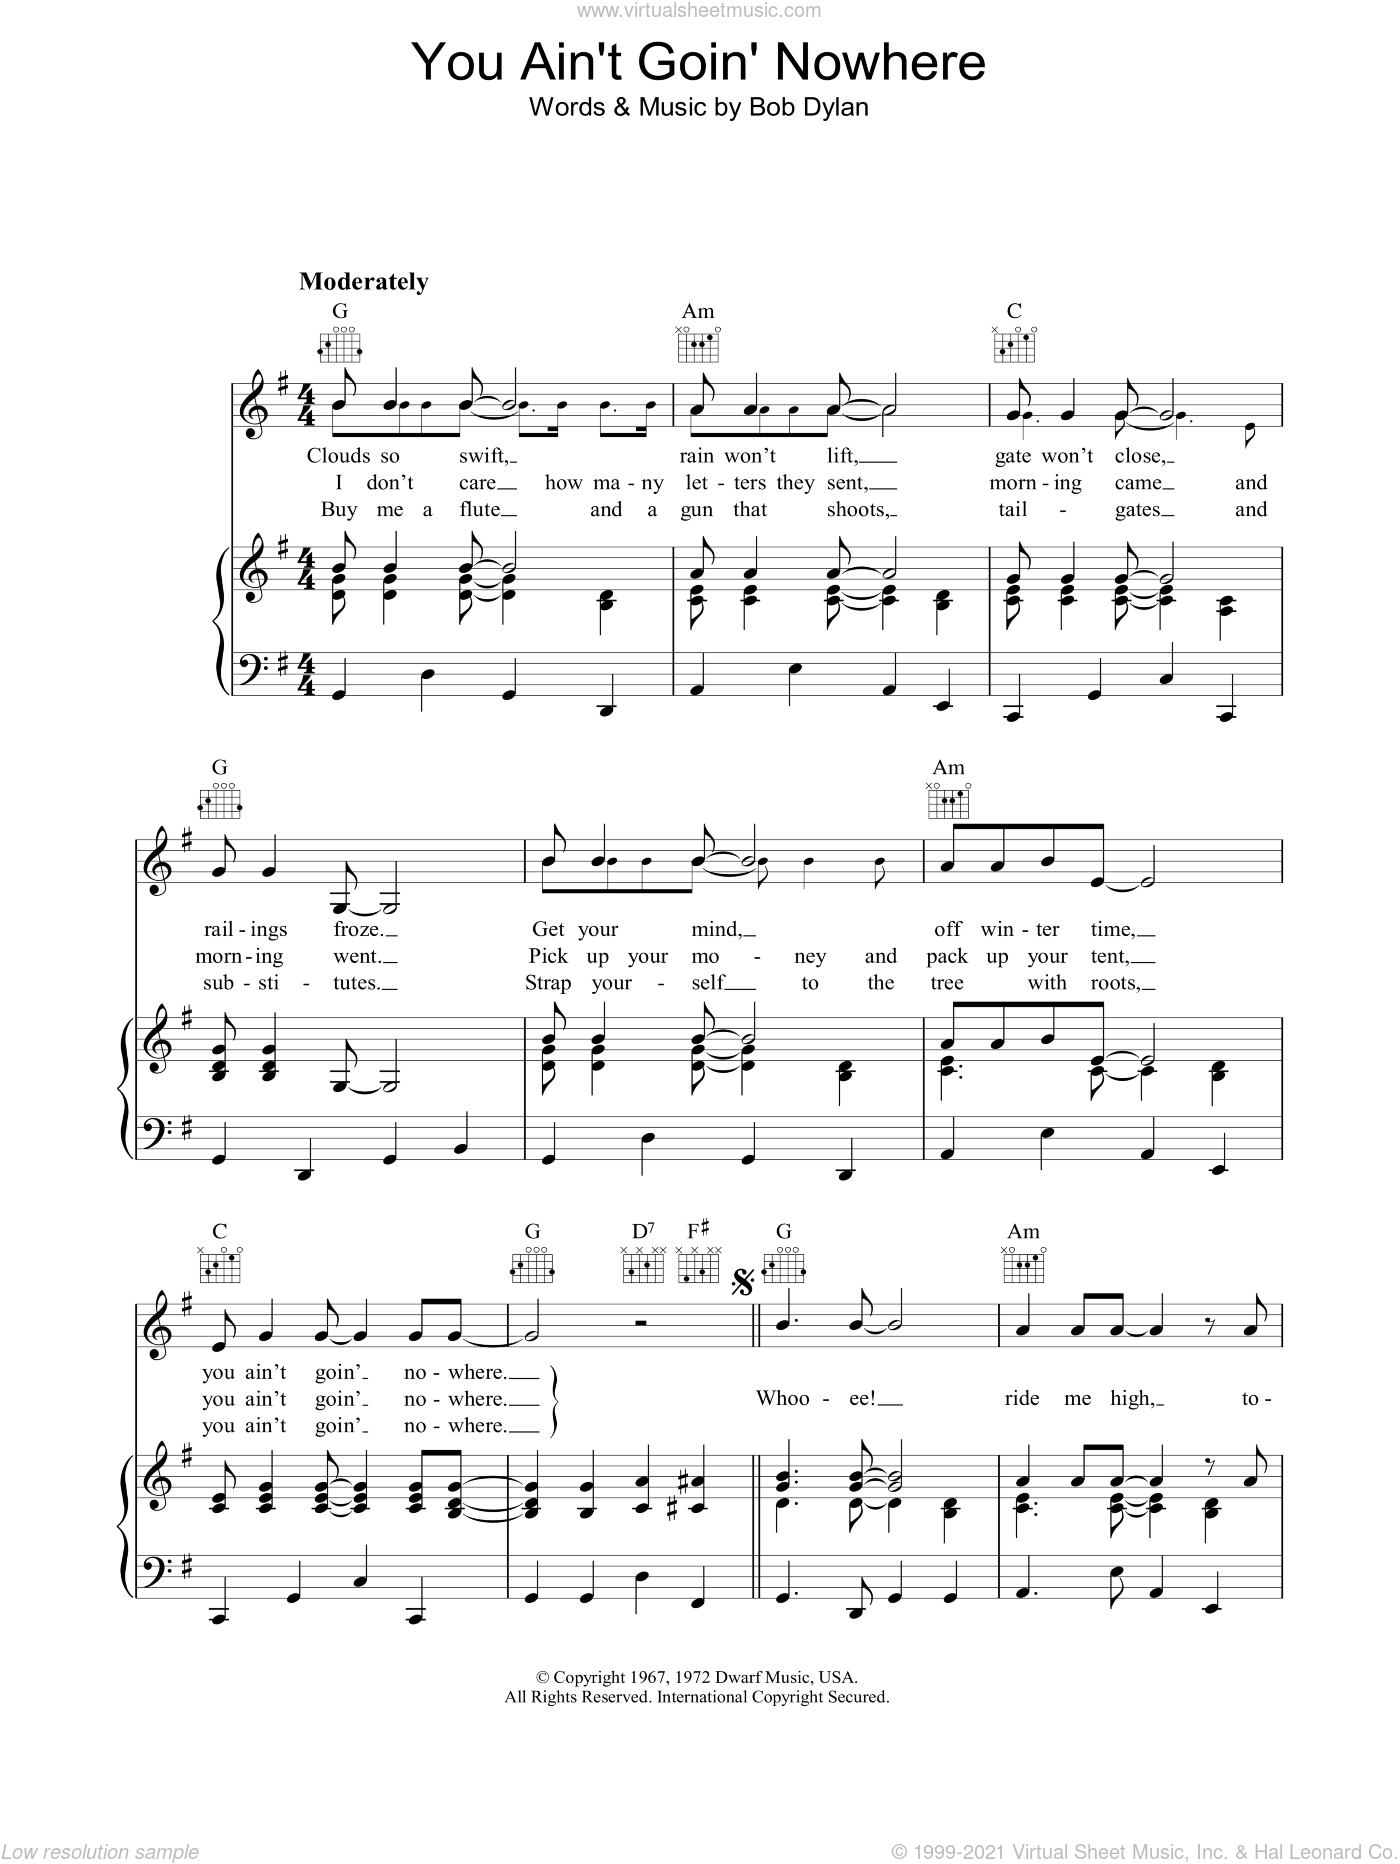 You Ain't Goin' Nowhere sheet music for voice, piano or guitar by Bob Dylan, intermediate. Score Image Preview.